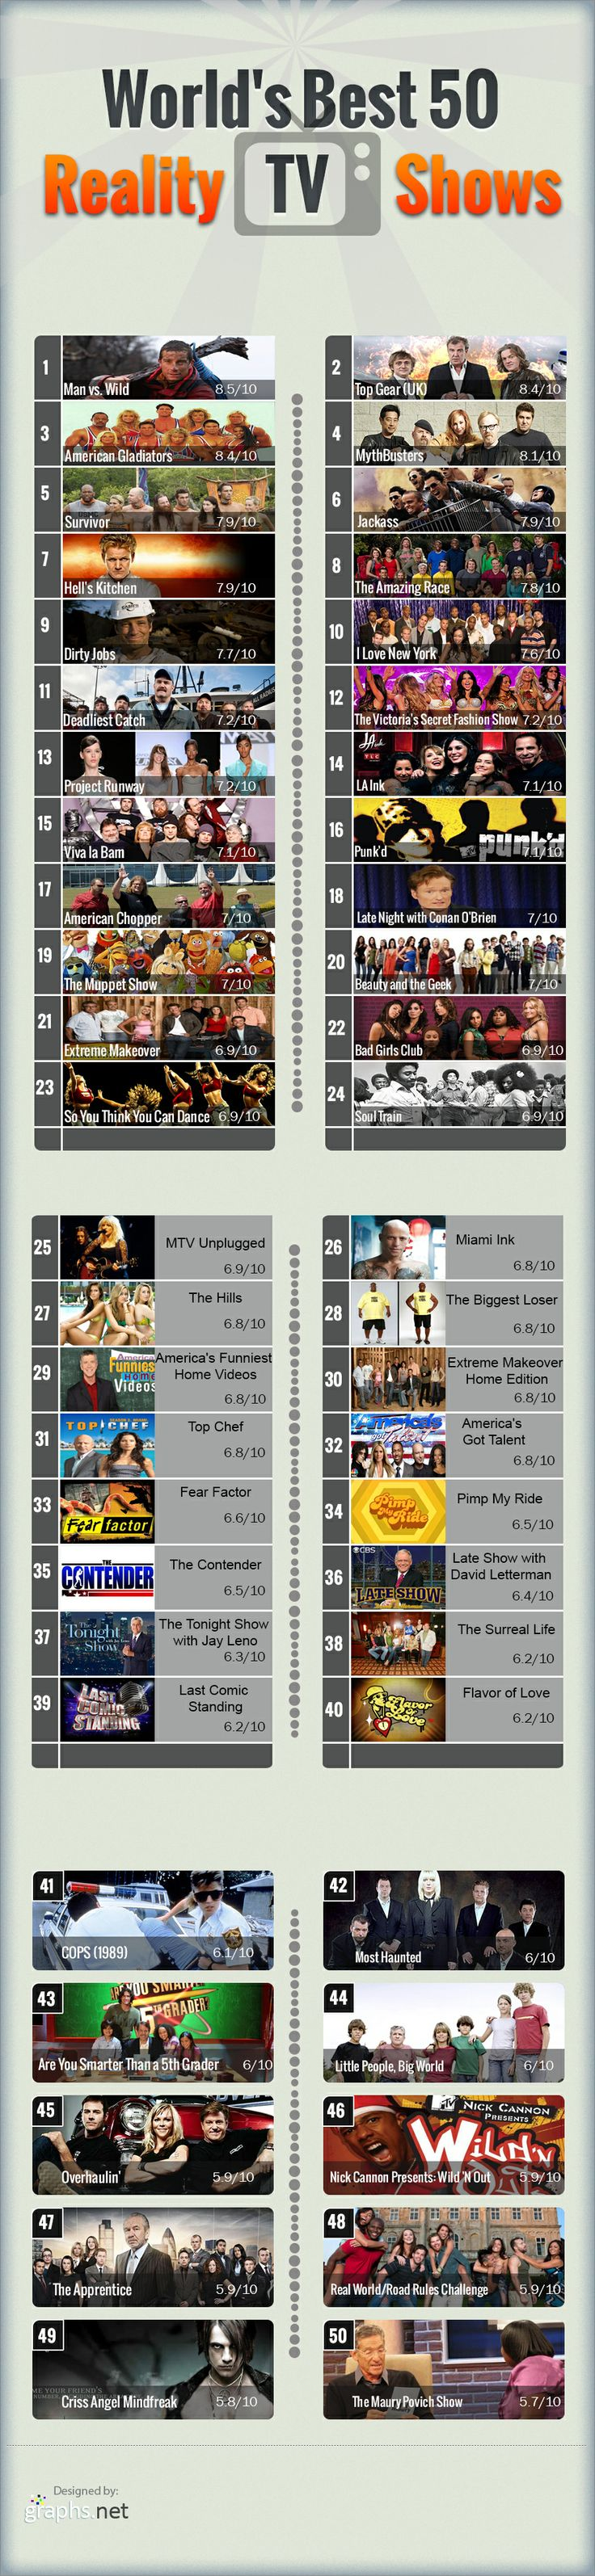 Reality Shows on TV are becoming hot favourite among the people these days and those who love to see these shows will surely find our following list of best reality shows interesting.  Man Vs Wild is the most popular show with rating of 8.5 followed by Top Gear UK with 8.4 rating. The 3rd and the 4th position is grabbed by American Gladiators and MythBusters with rating of 8.4 and 8.1 respectively.